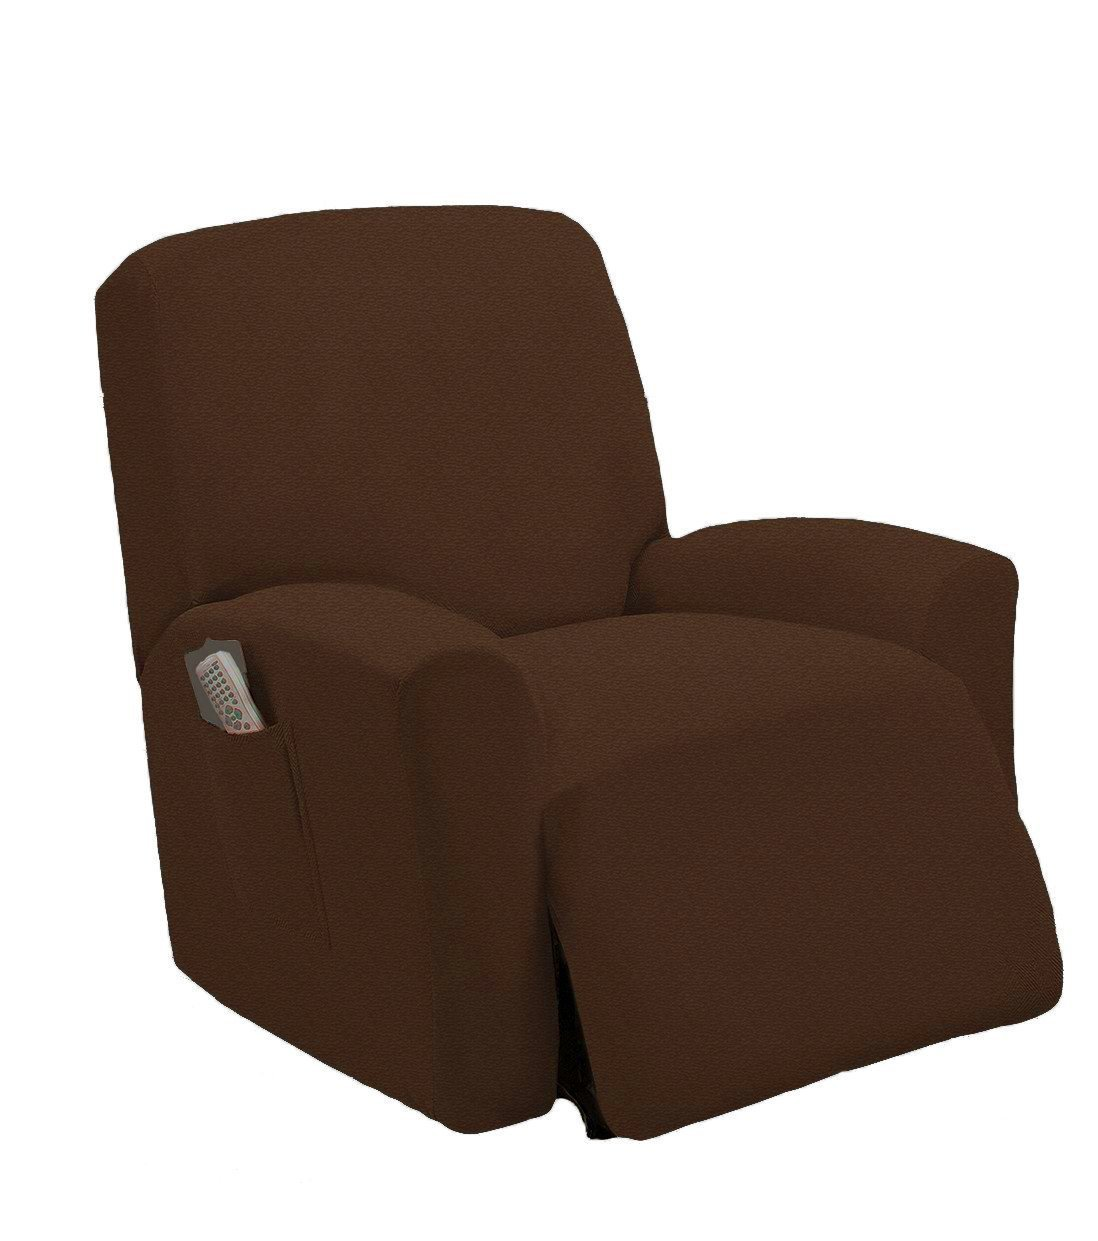 Burgundy Elegant Home One piece Stretch Sterling Recliner Chair Cover Furniture Slipcovers with Remote Pocket Fit most Recliner Chairs # Stella